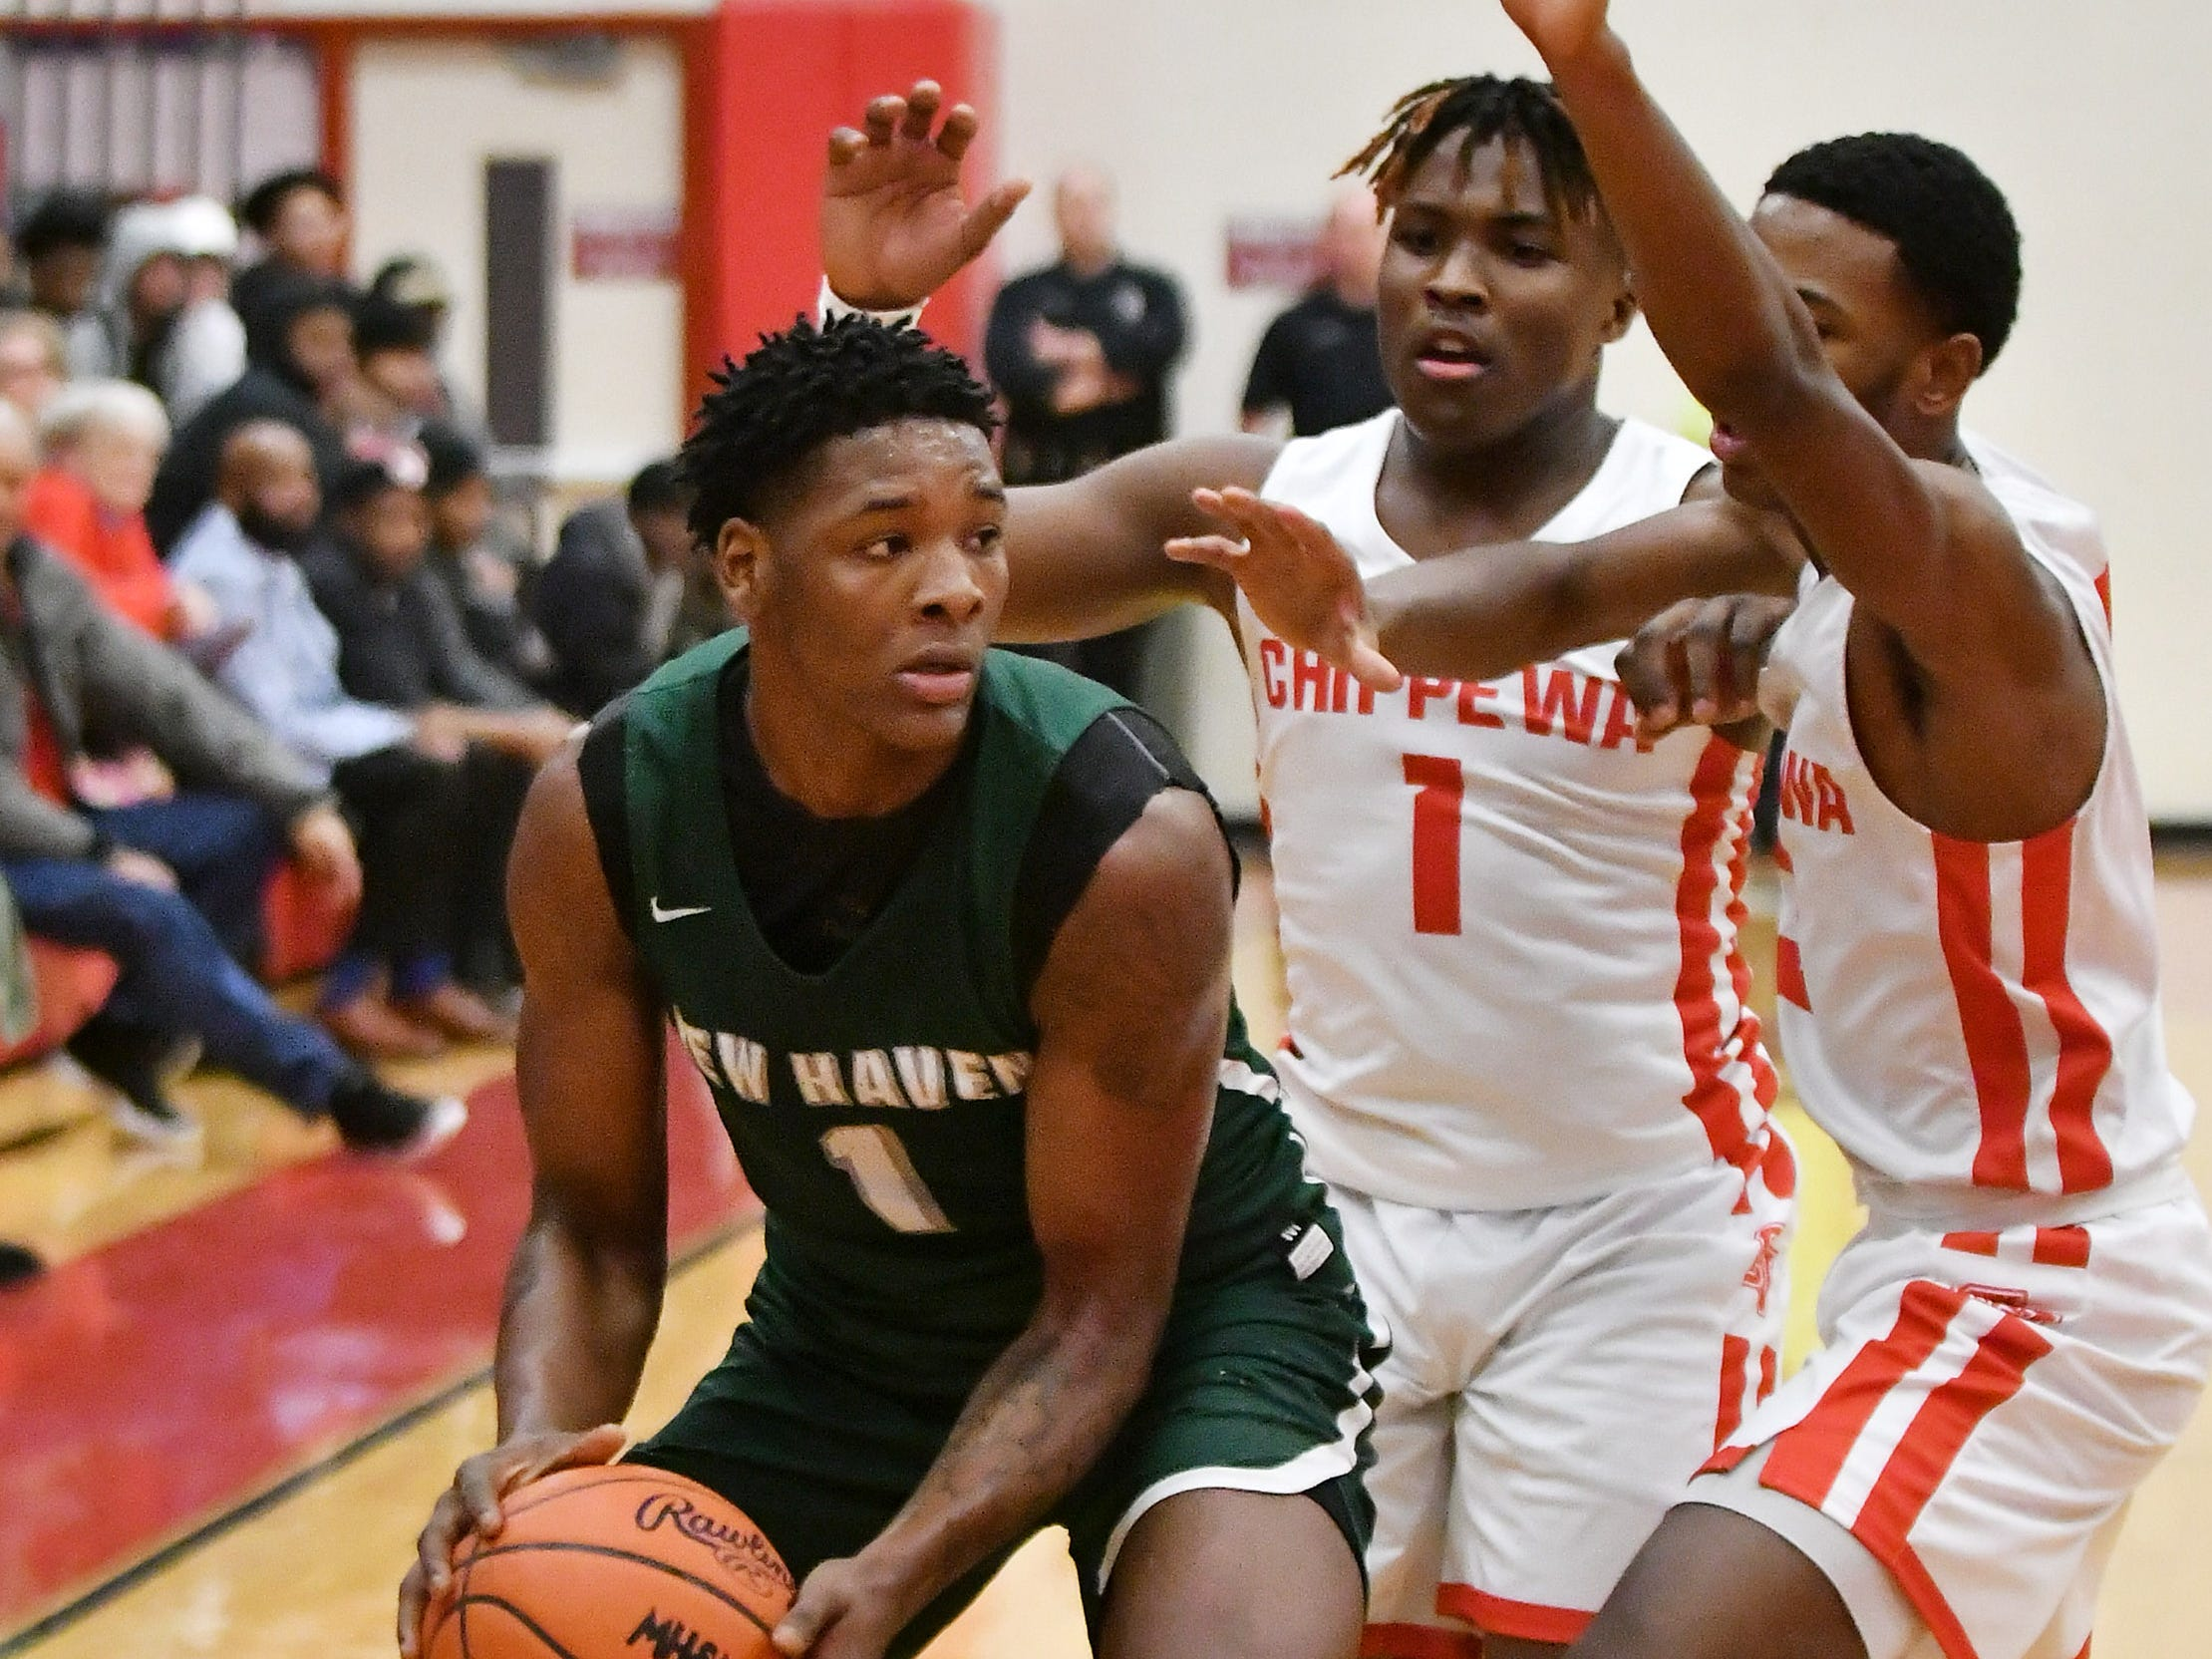 Chippewa Valley's Myren Harris (1) and Corey McCray, right, guard New Haven's Romeo Weems in the first half.